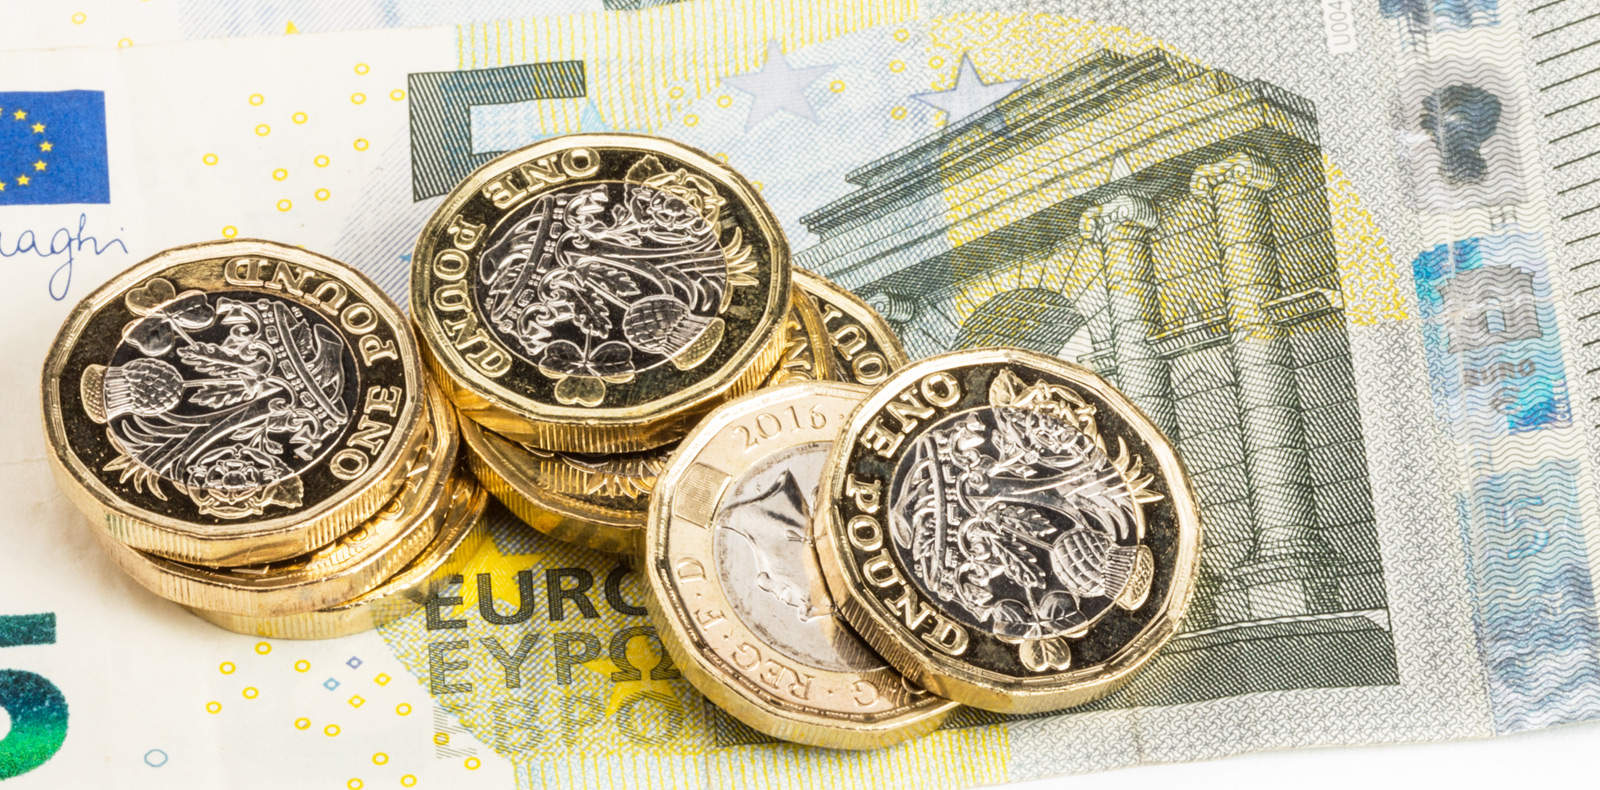 The second phase of lockdown easing took place in the UK yesterday which helped boost sterling against the euro.